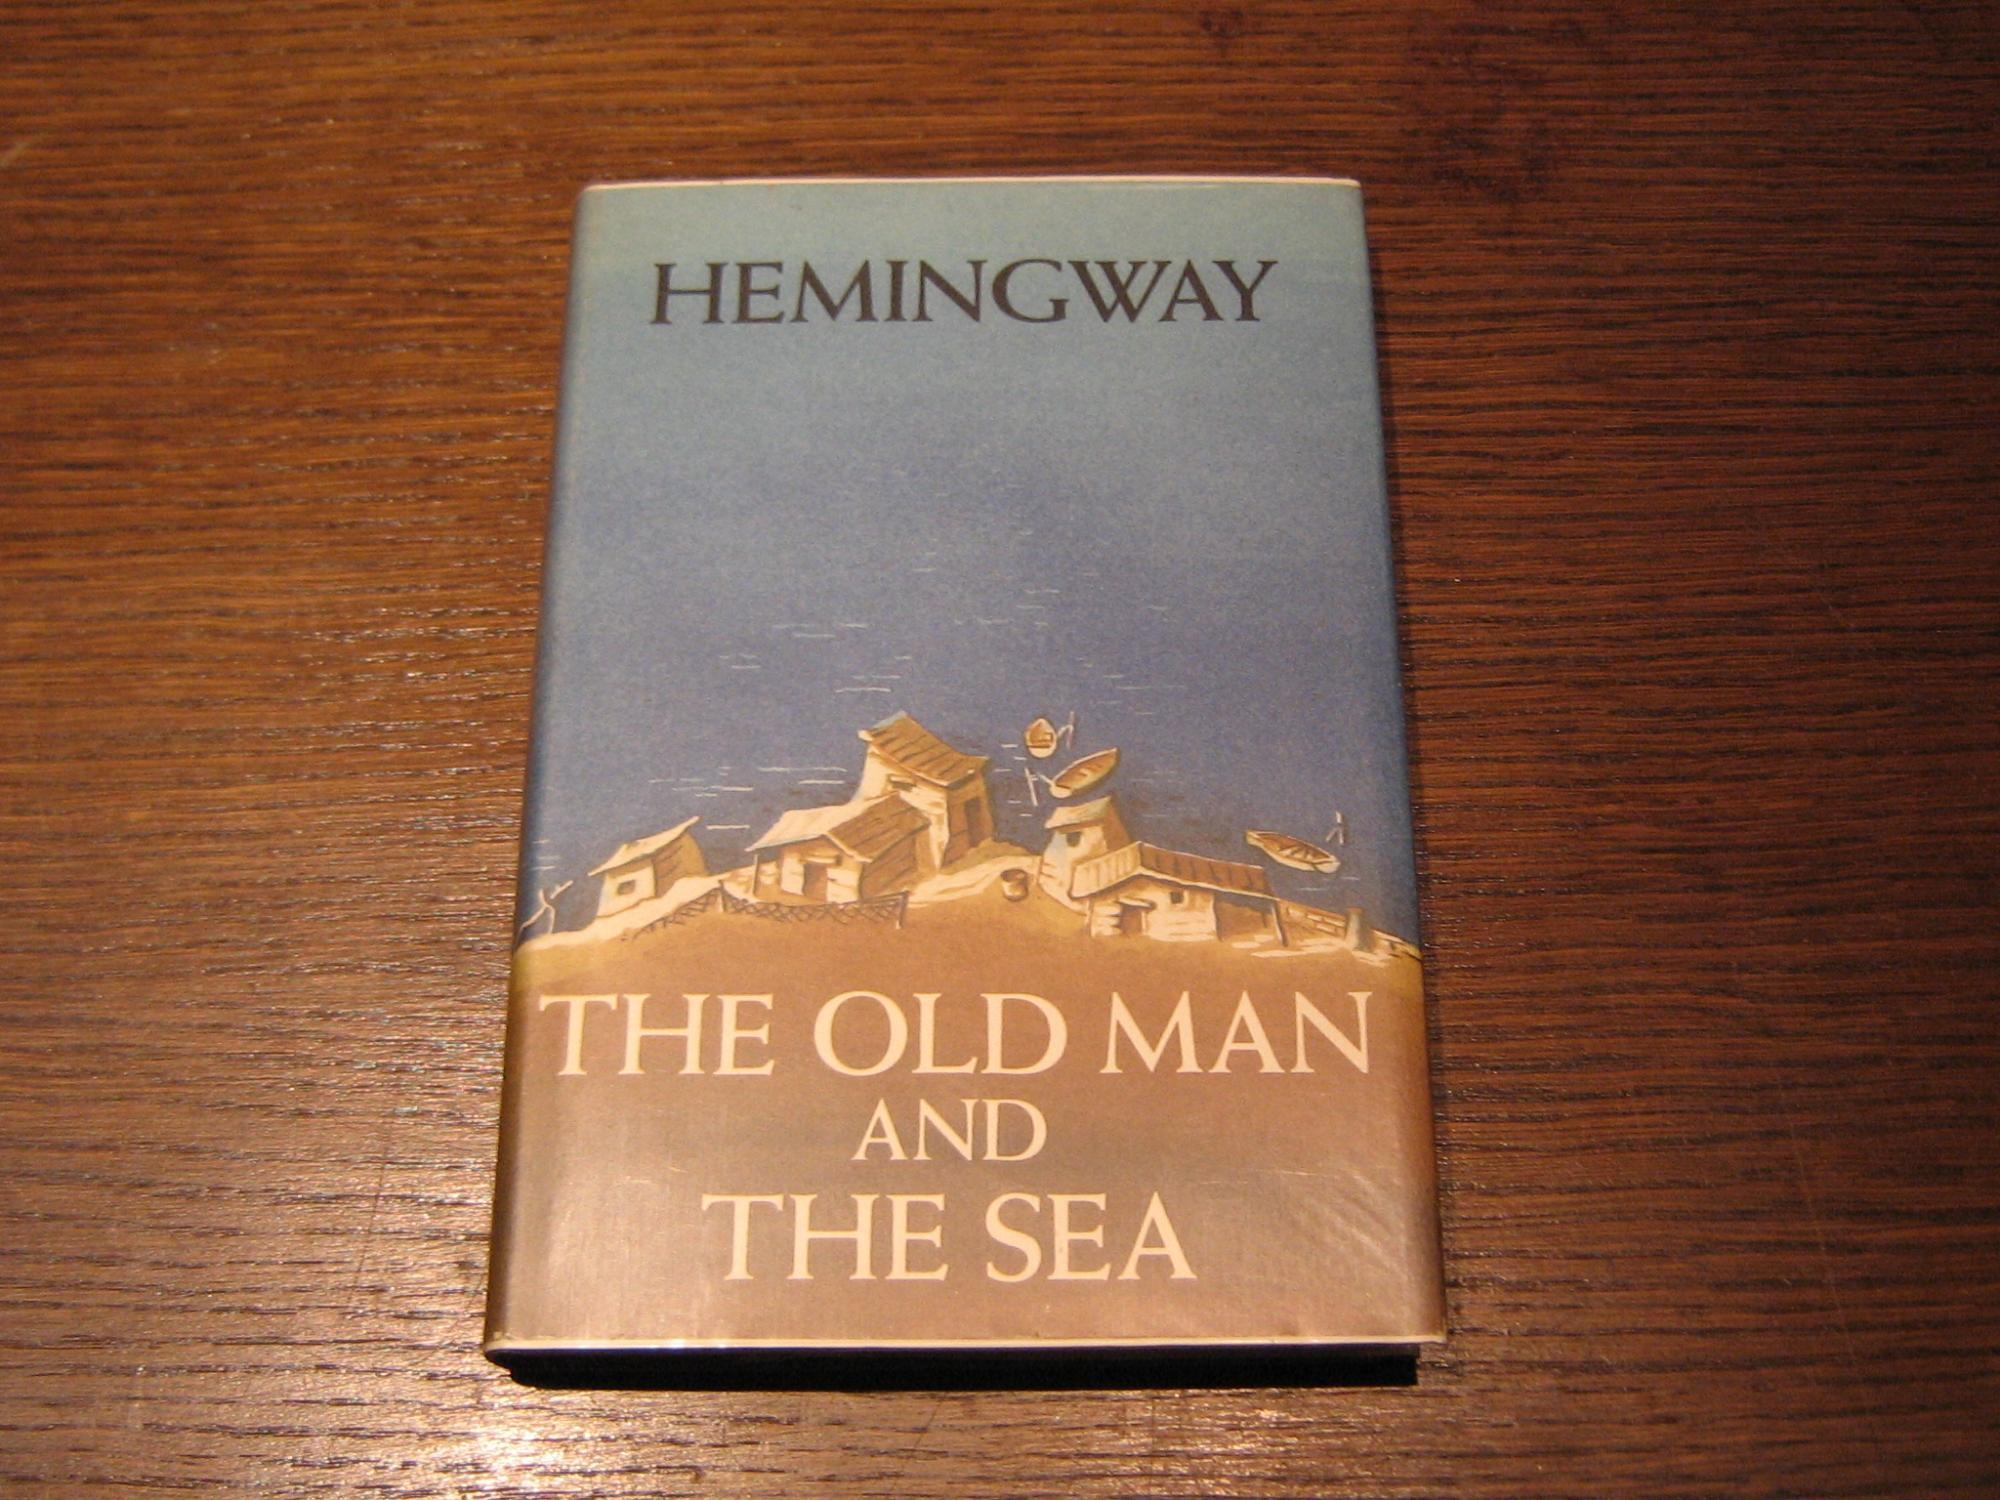 an analysis of hemingways the old man and the sea Analysis of hemingway's old man and the sea anand bose english language , literary analysis , literature november 13, 2017 november 13, 2017 2 minutes hemingway is an all time novelist and is famous for having won the nobel prize for the novel old man and the sea.